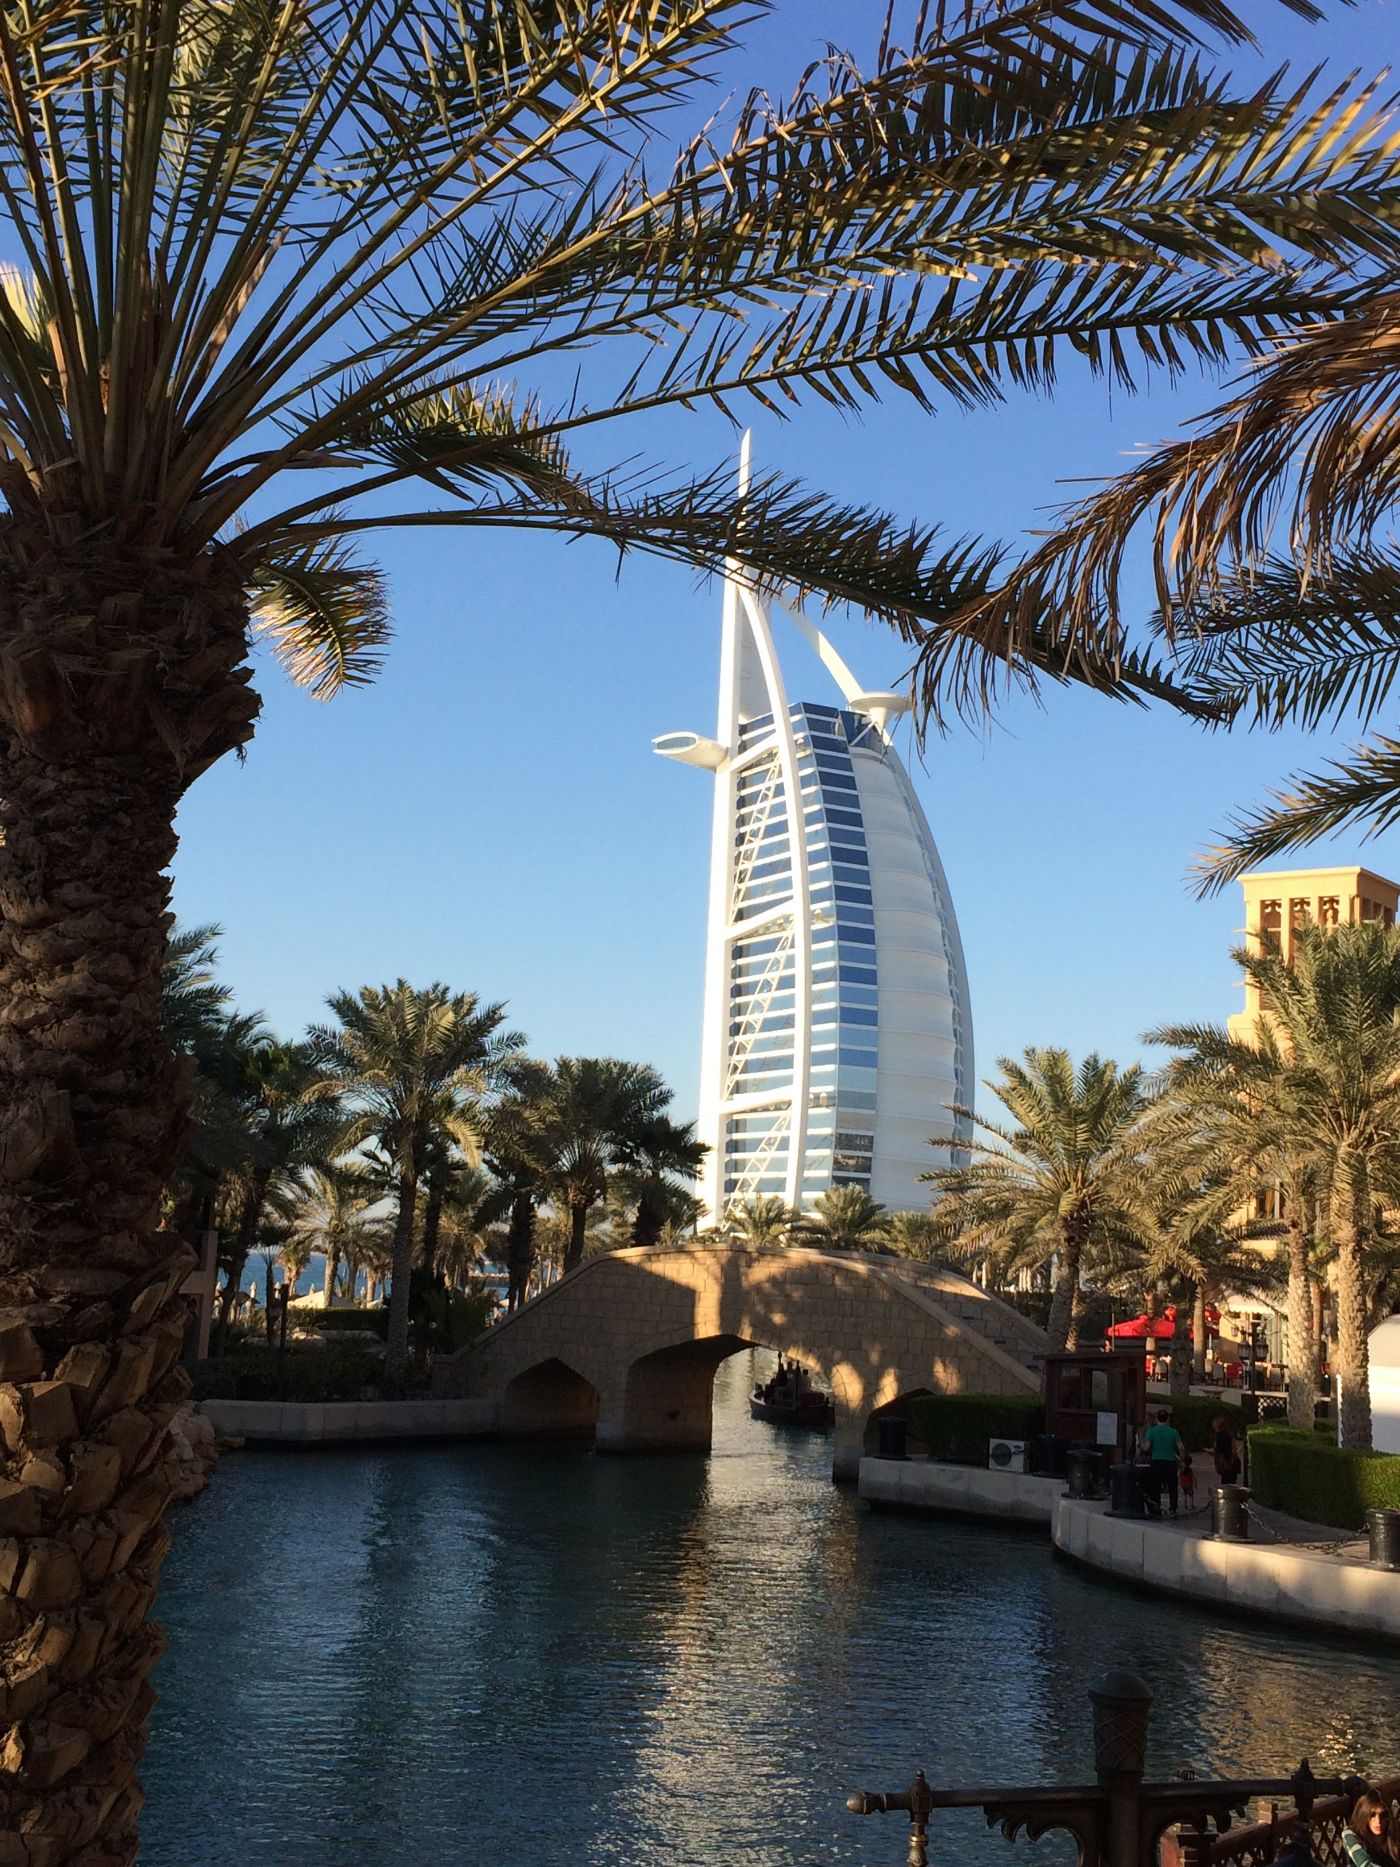 Places of interest in Dubai - What you have to see-Burj al Arab